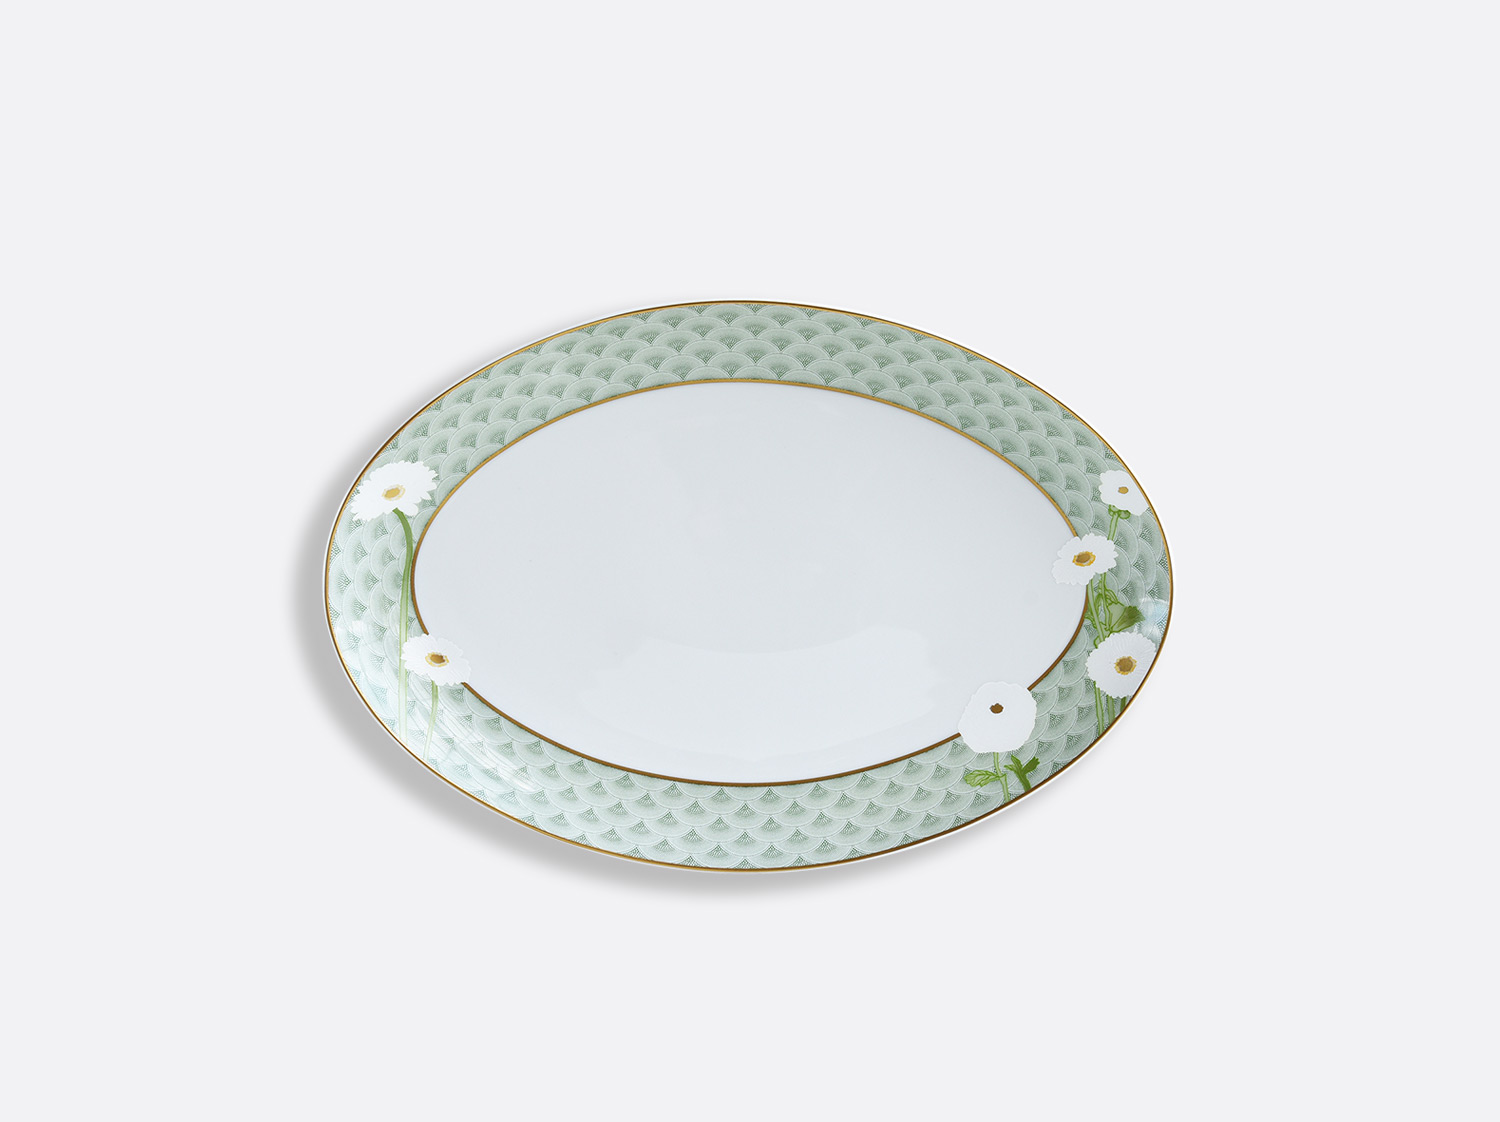 Plat ovale 33 cm en porcelaine de la collection PRAIANA Bernardaud